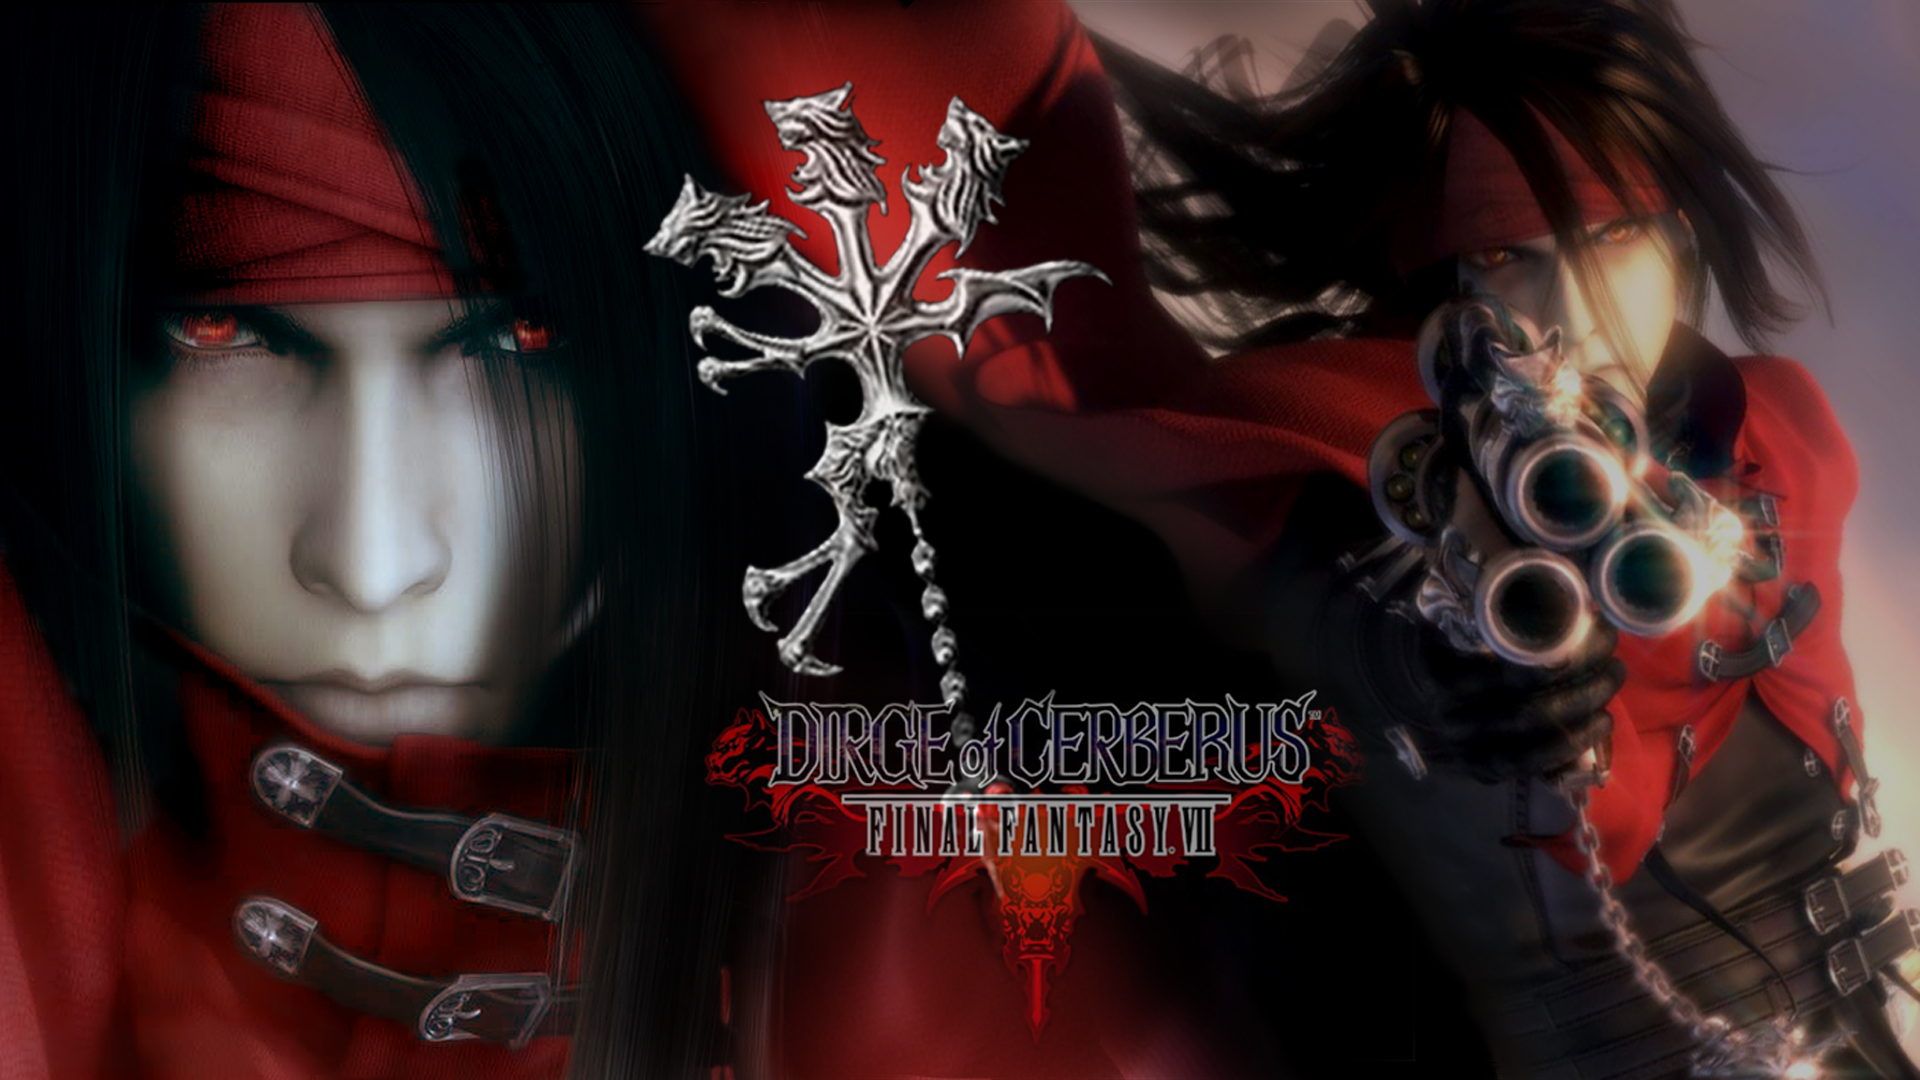 Final Fantasy Dirge Of Cerberus Images Vincent HD Wallpaper And Background Photos